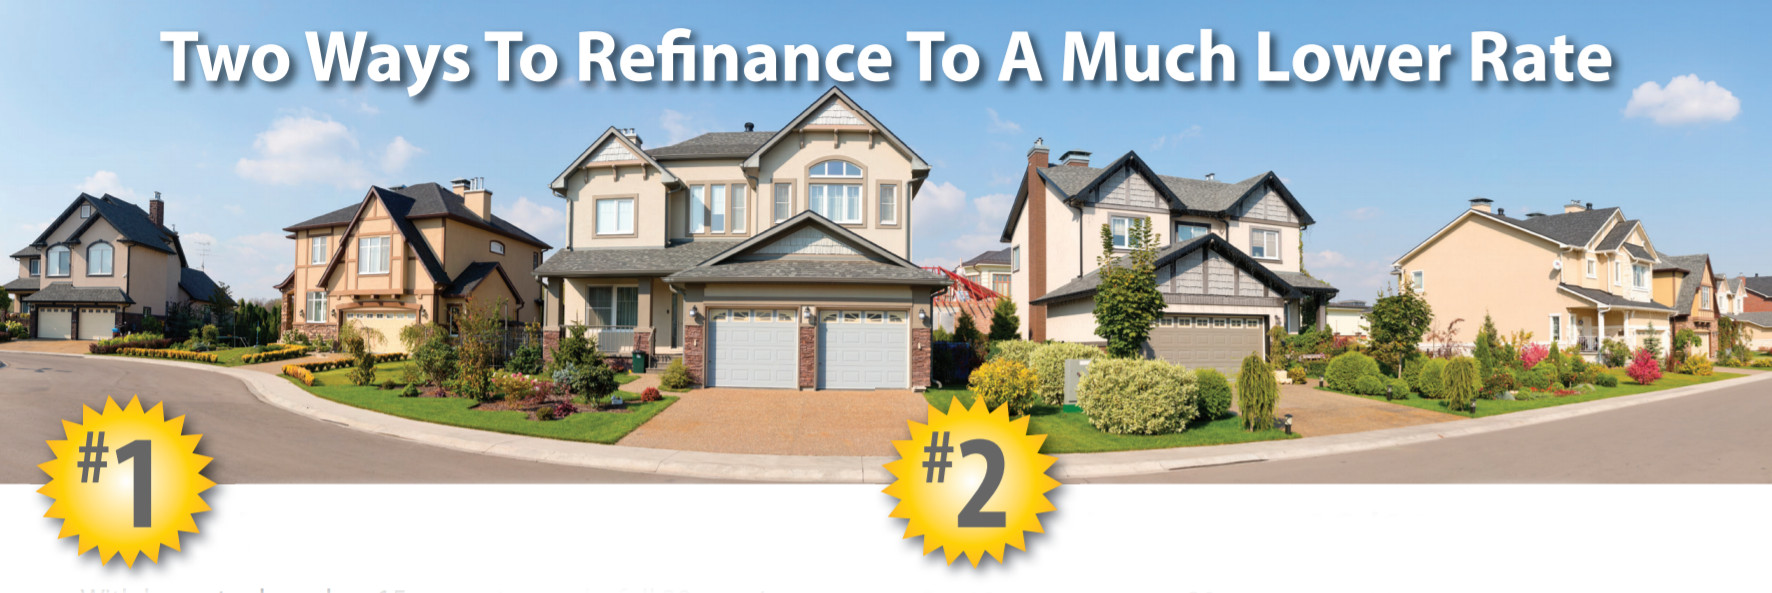 Two ways to refinance at a much lower rate